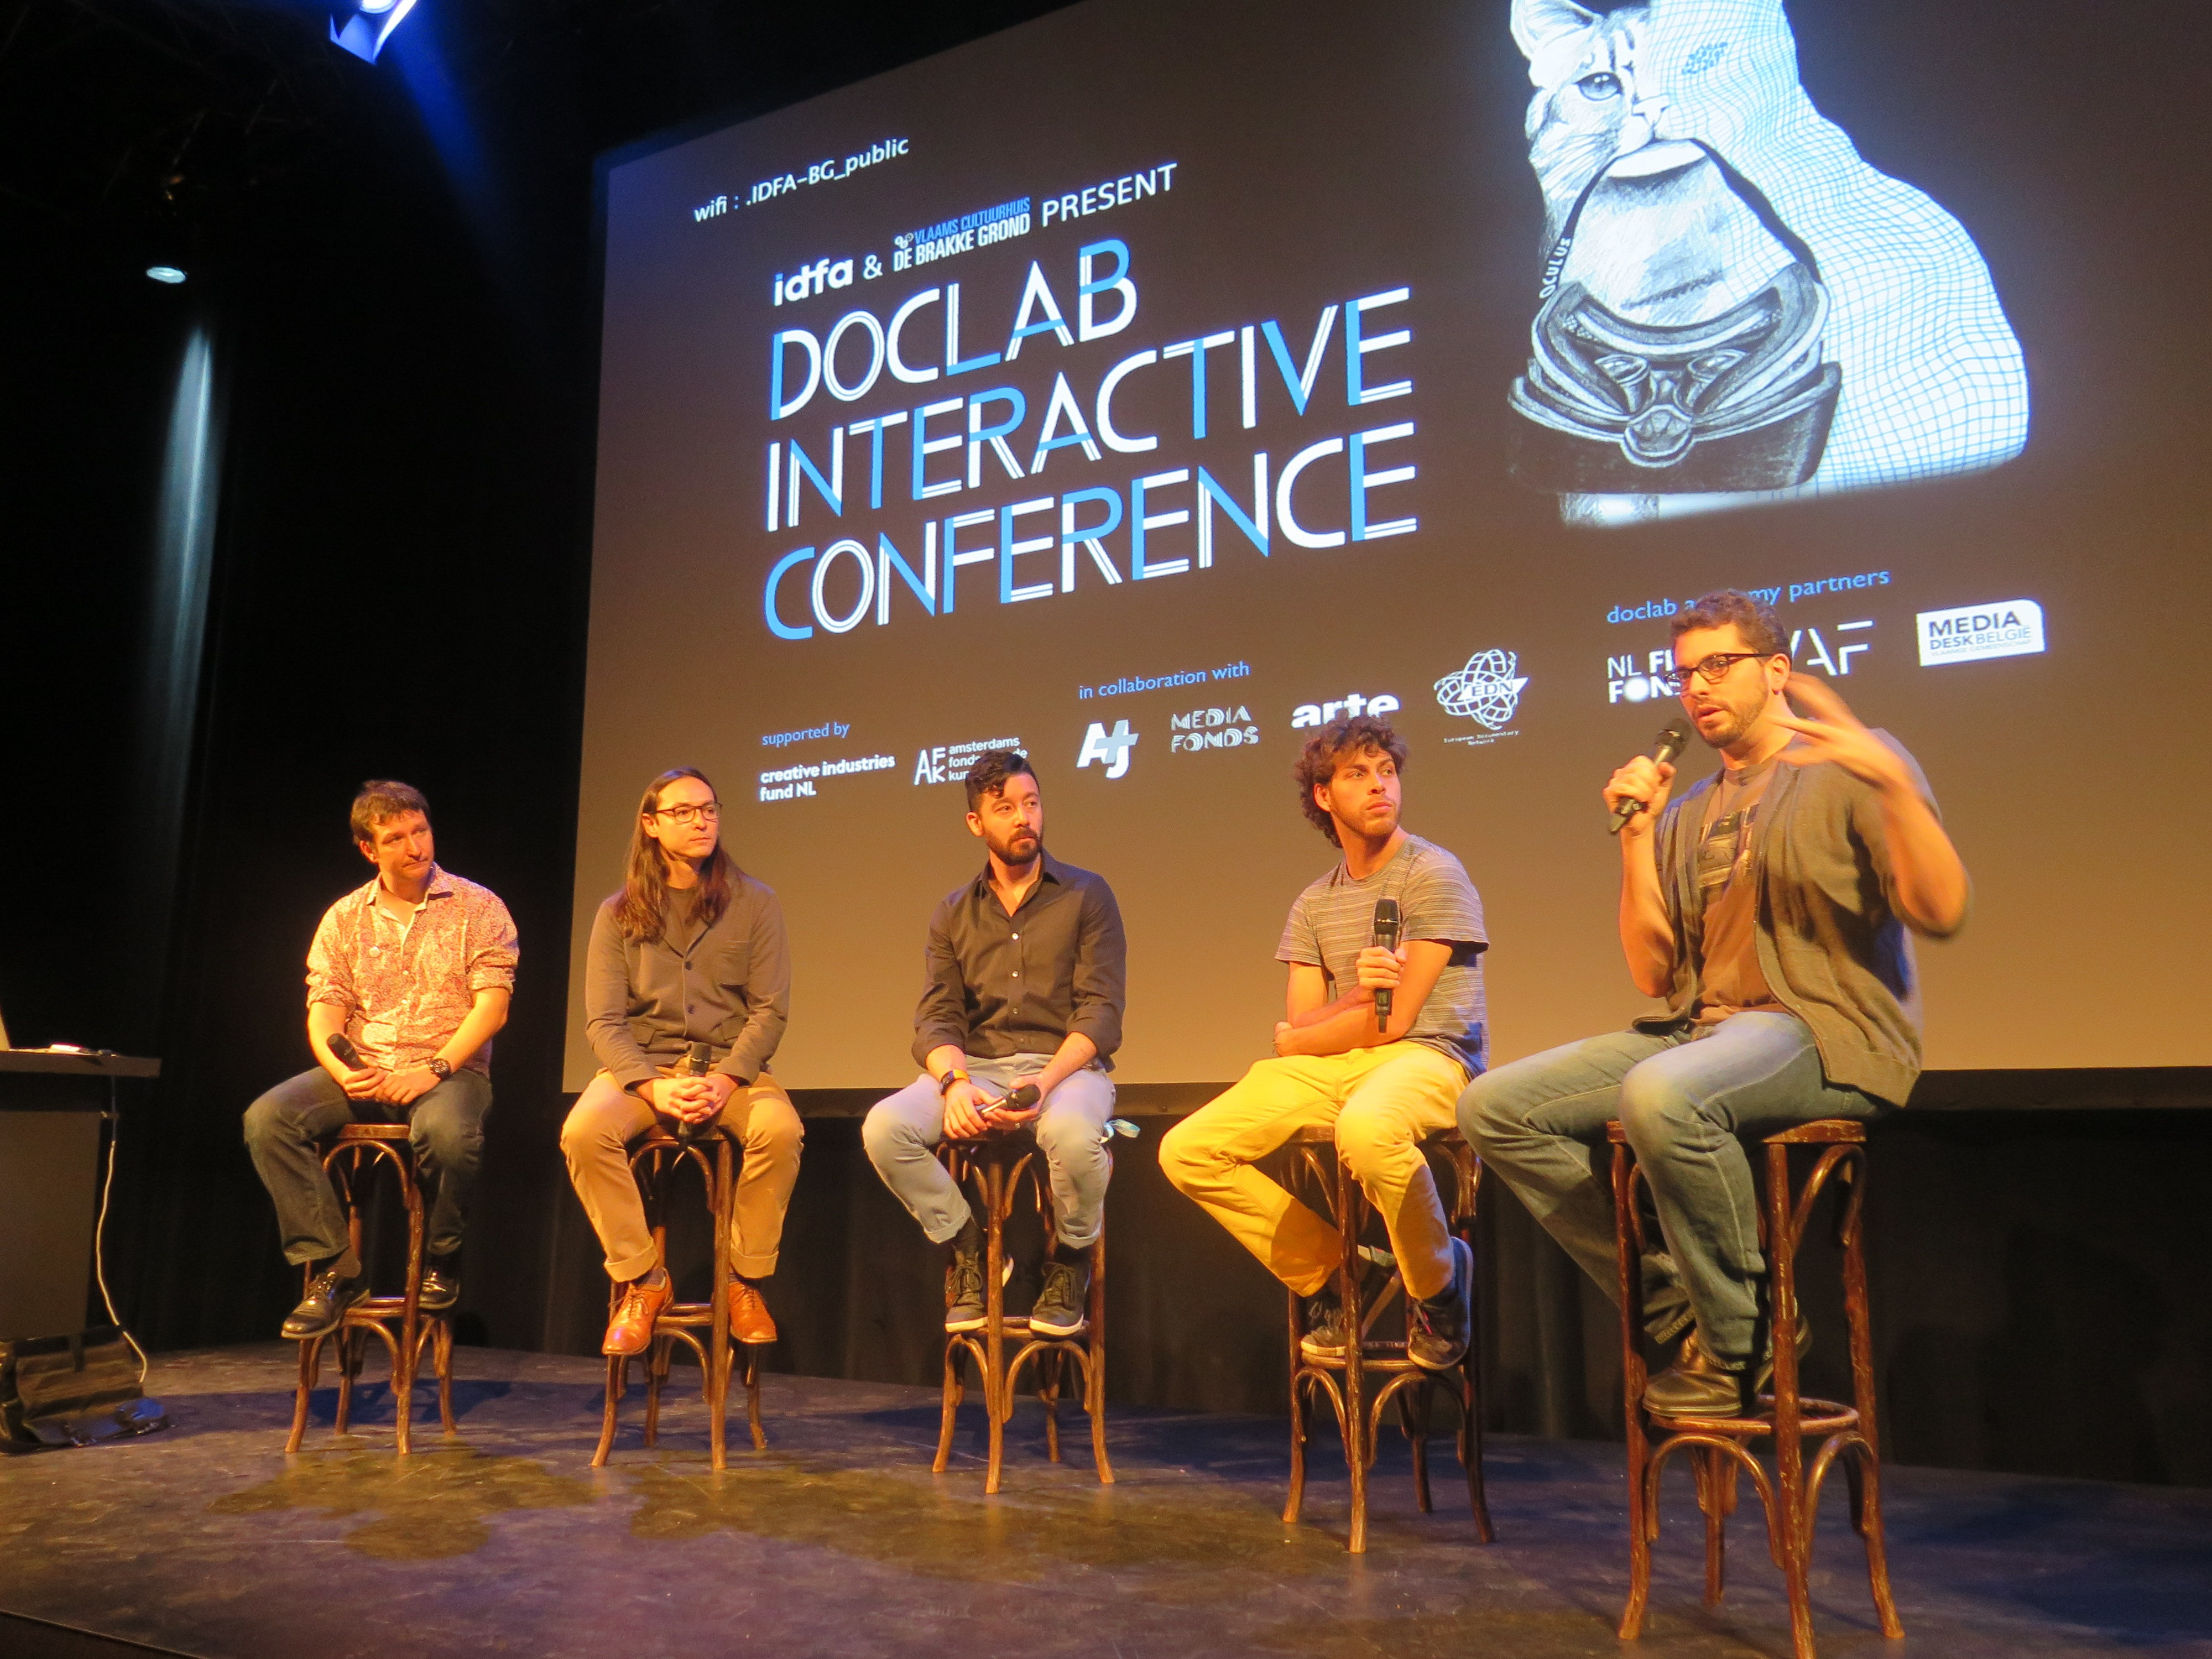 DocLab Conference at IDFA 2014